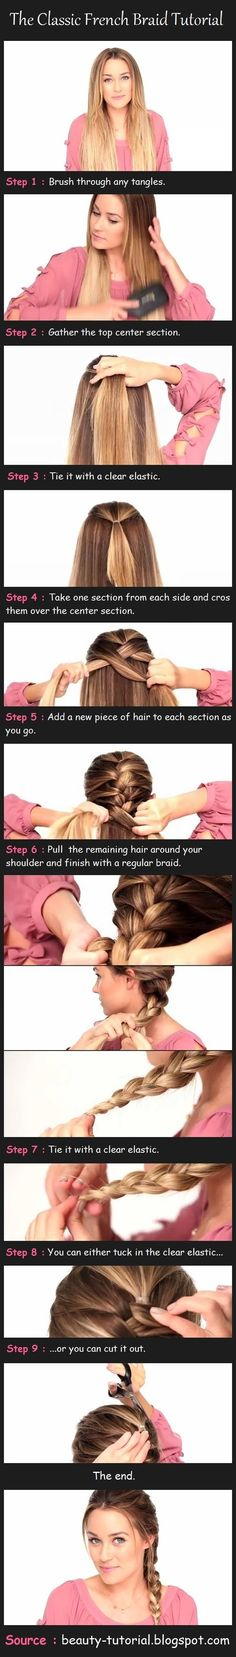 As one of the only girls left in the world who doesn't know how to french braid her hair:  Where has this tutorial been all my life!?